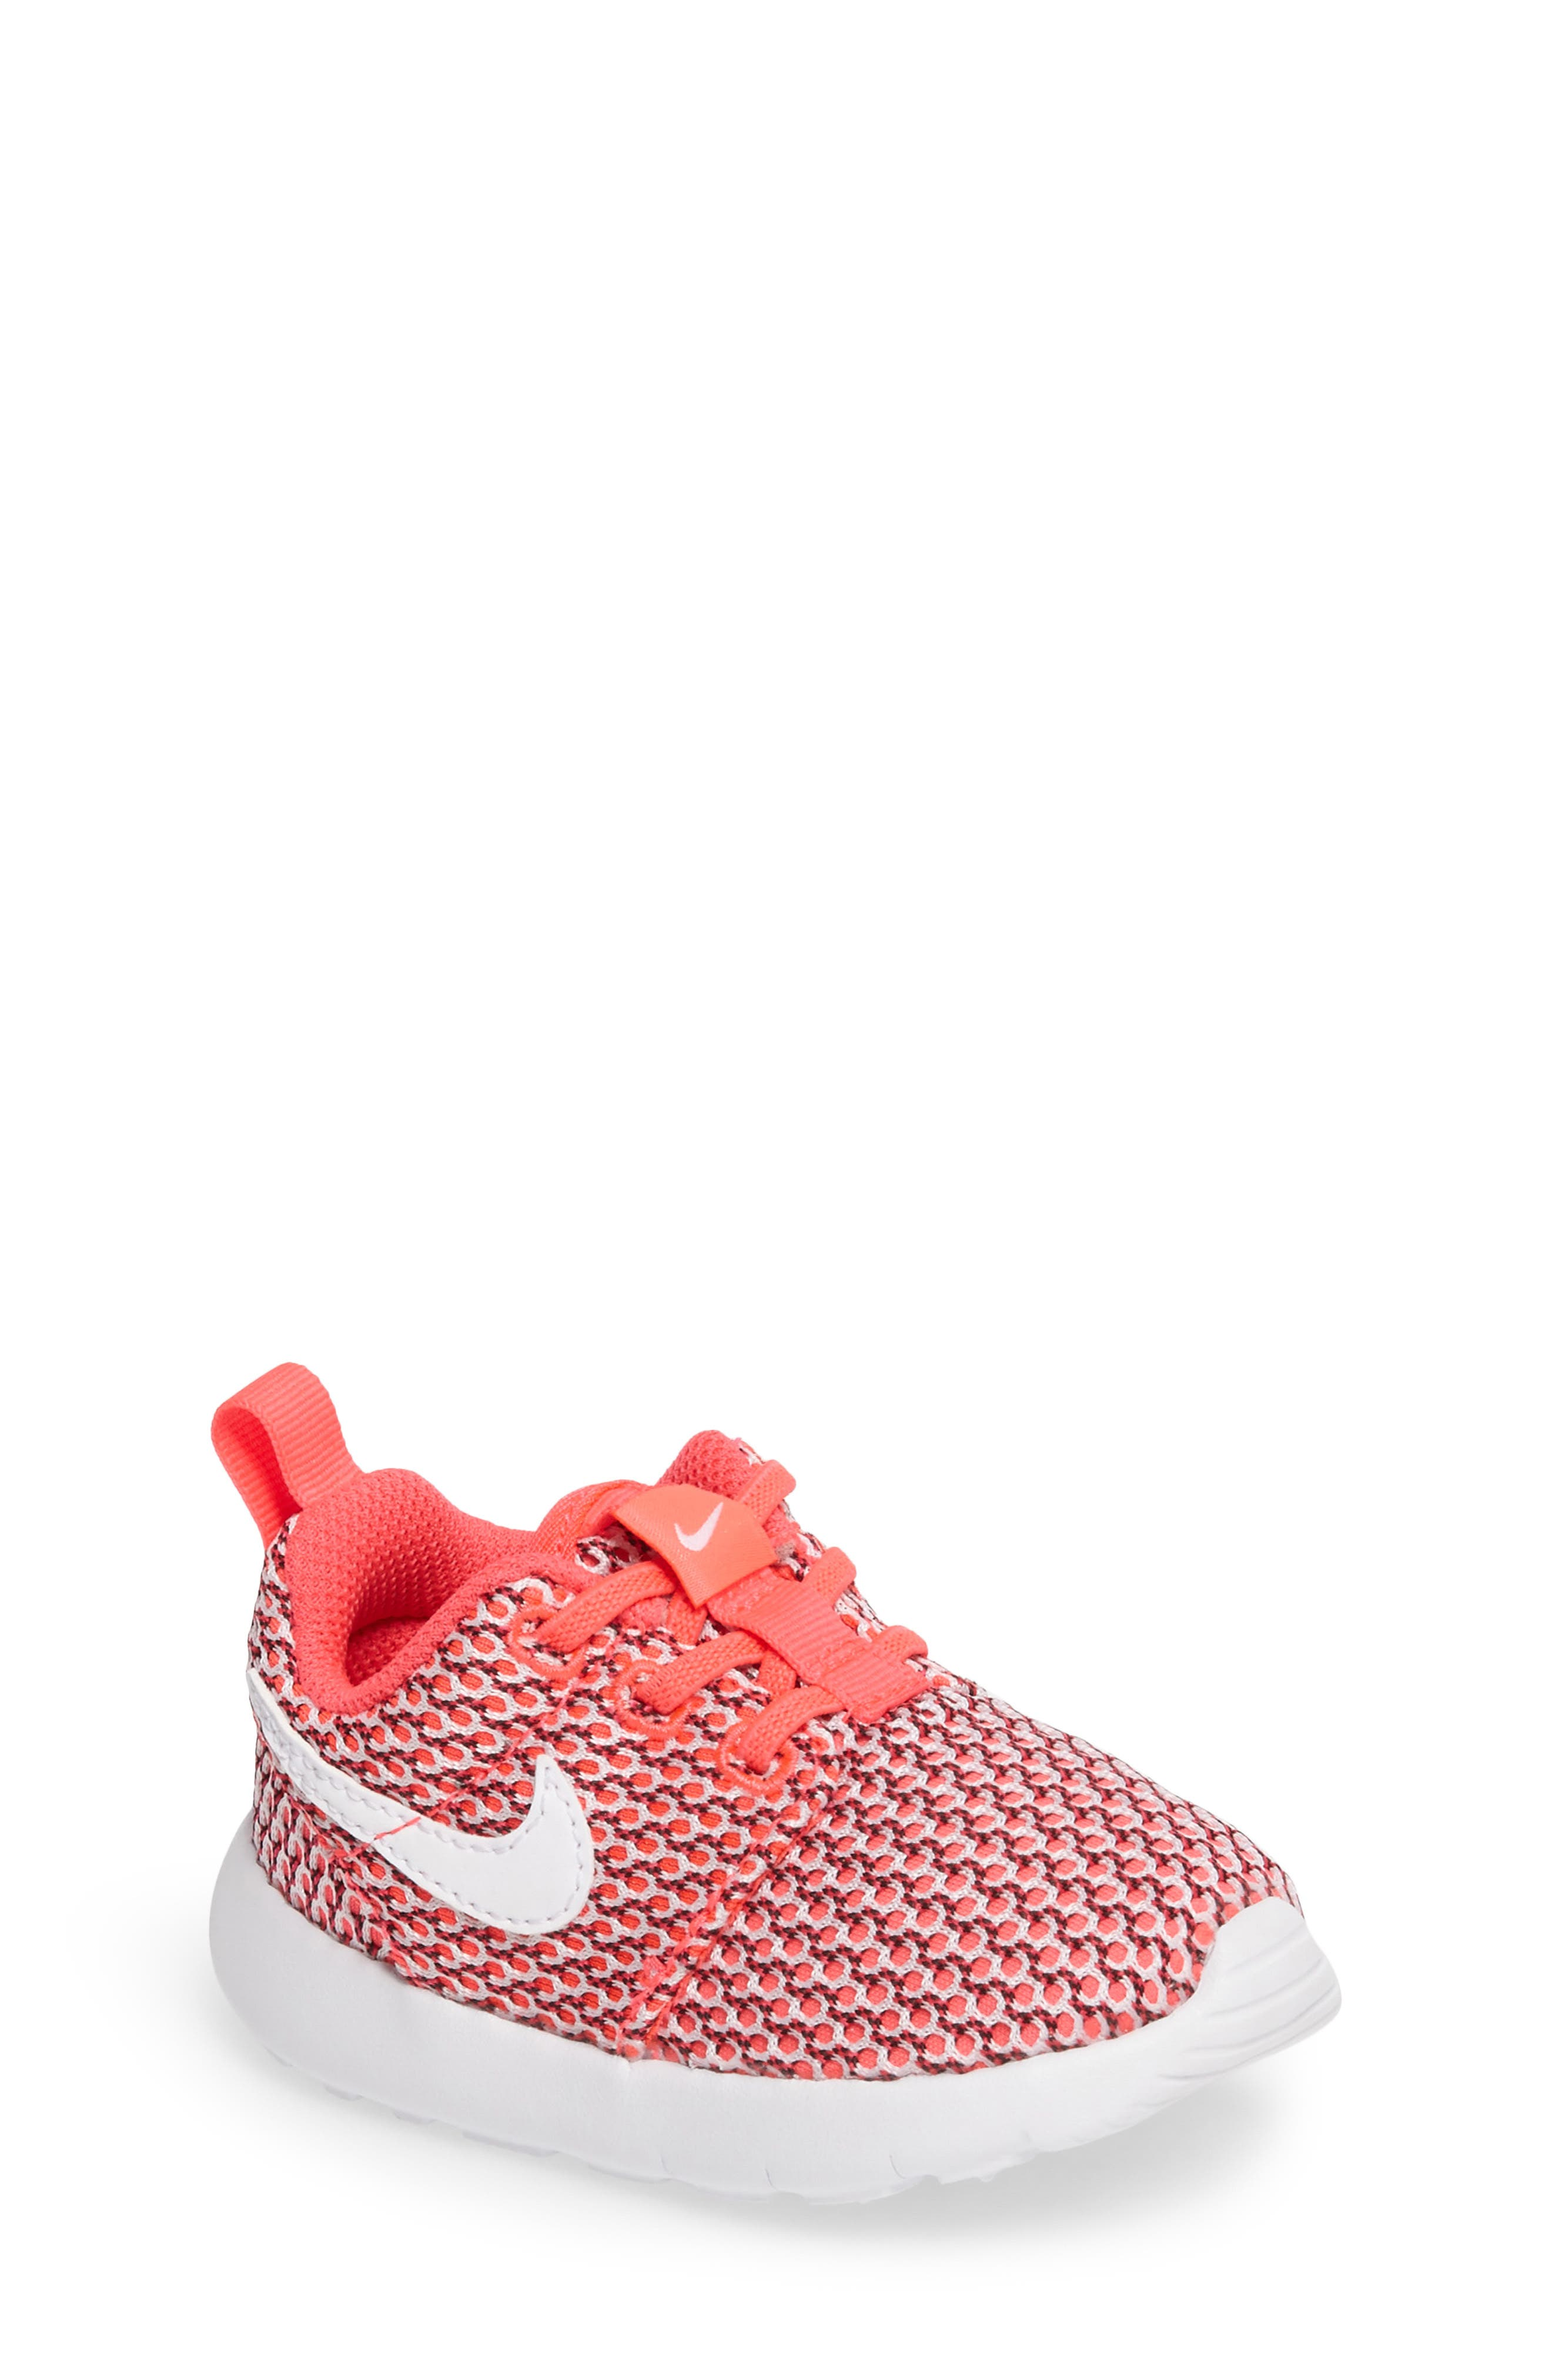 Nike Roshe Run Sneaker (Baby, Walker & Toddler)